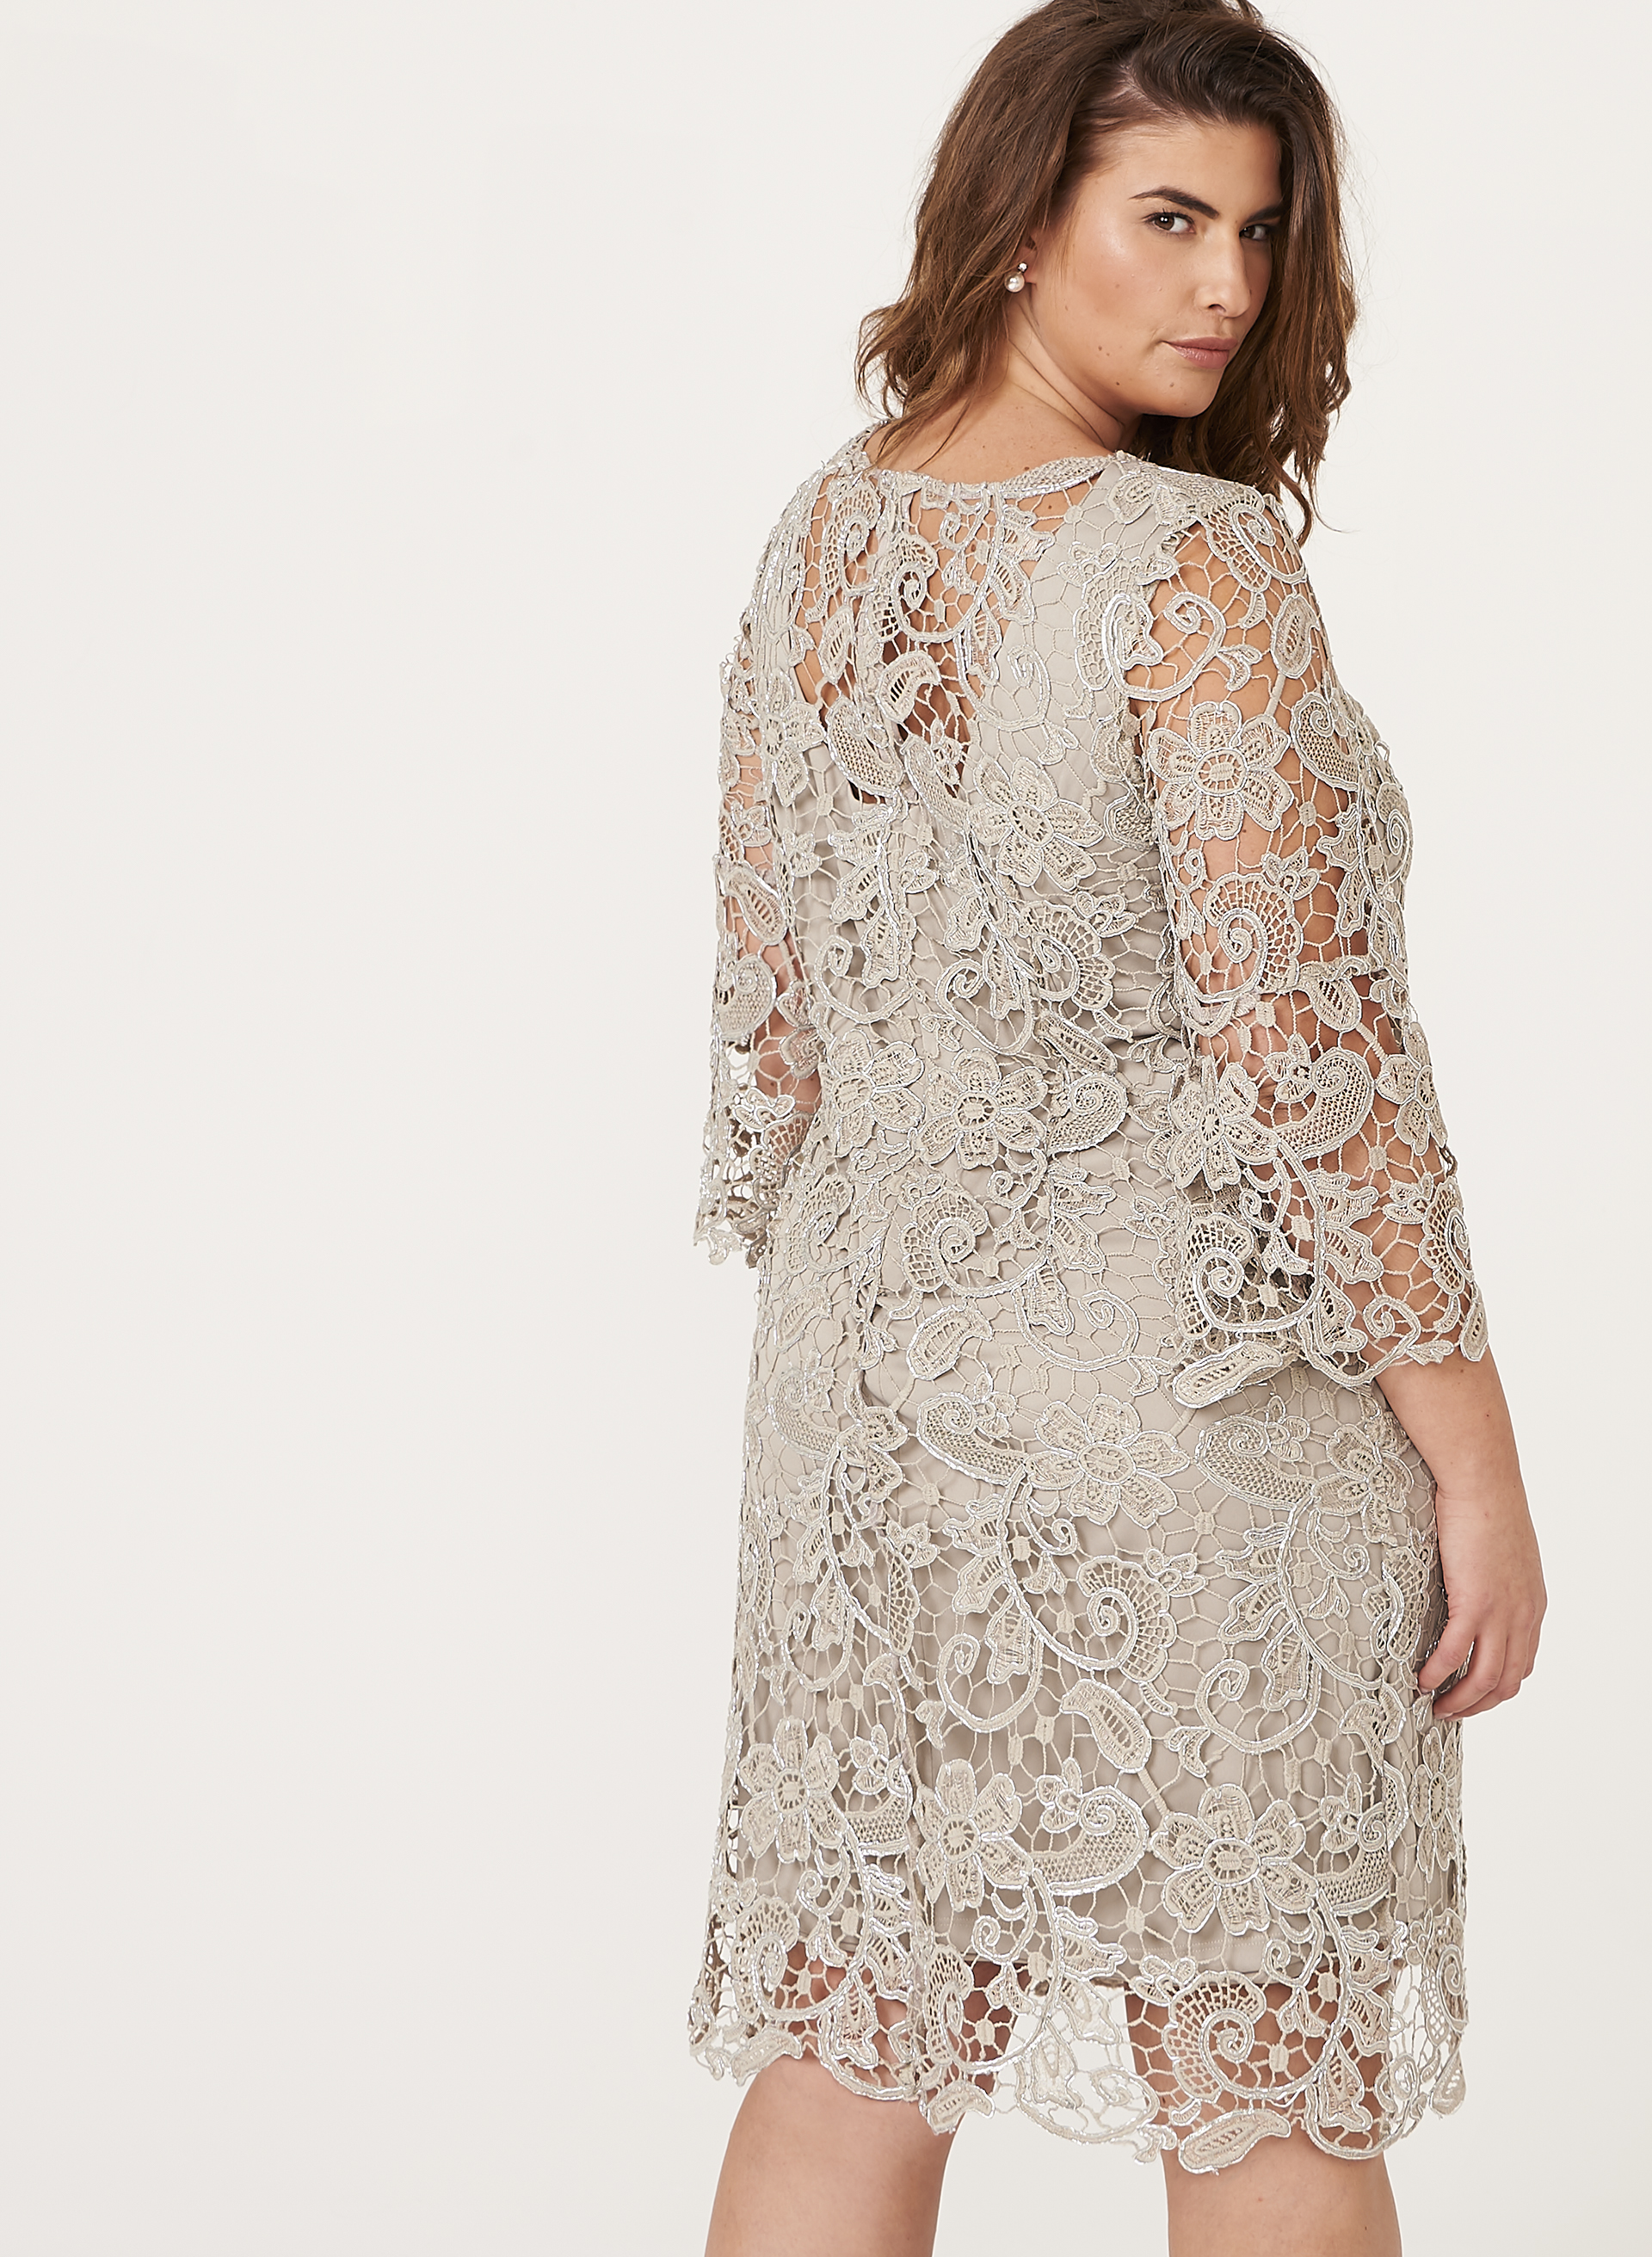 Metallic Lace Shift Dress | Laura